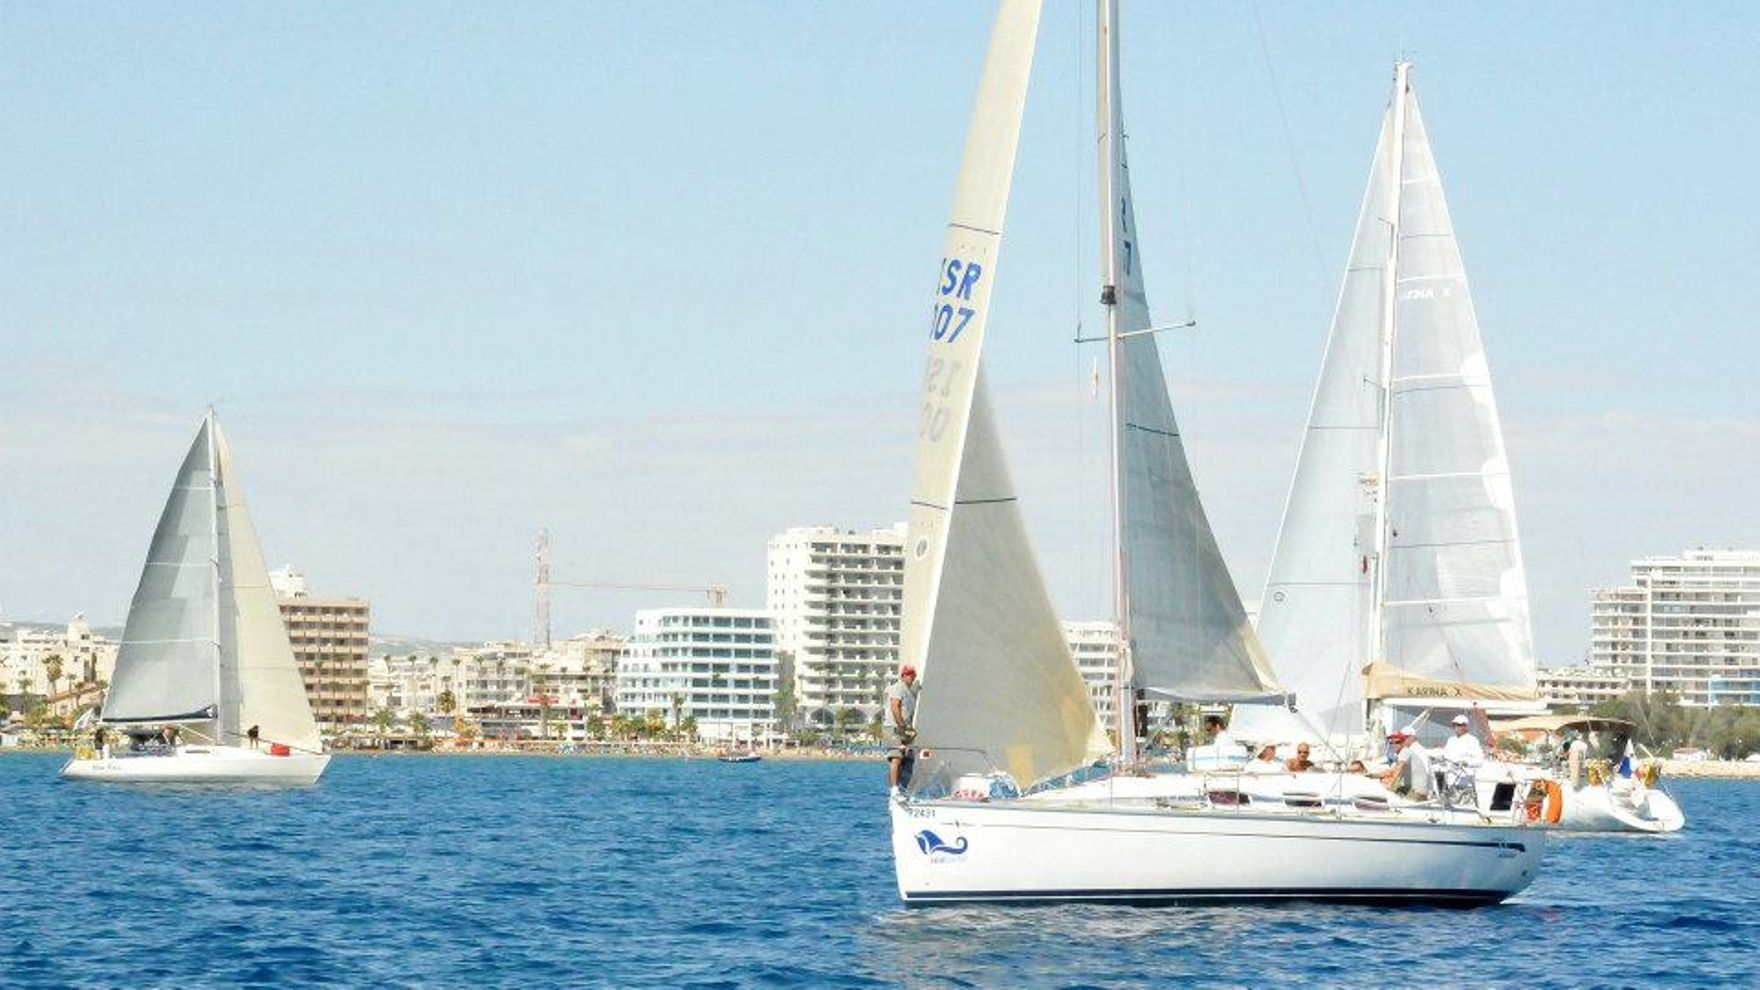 The Cyprus to Israel Offshore race